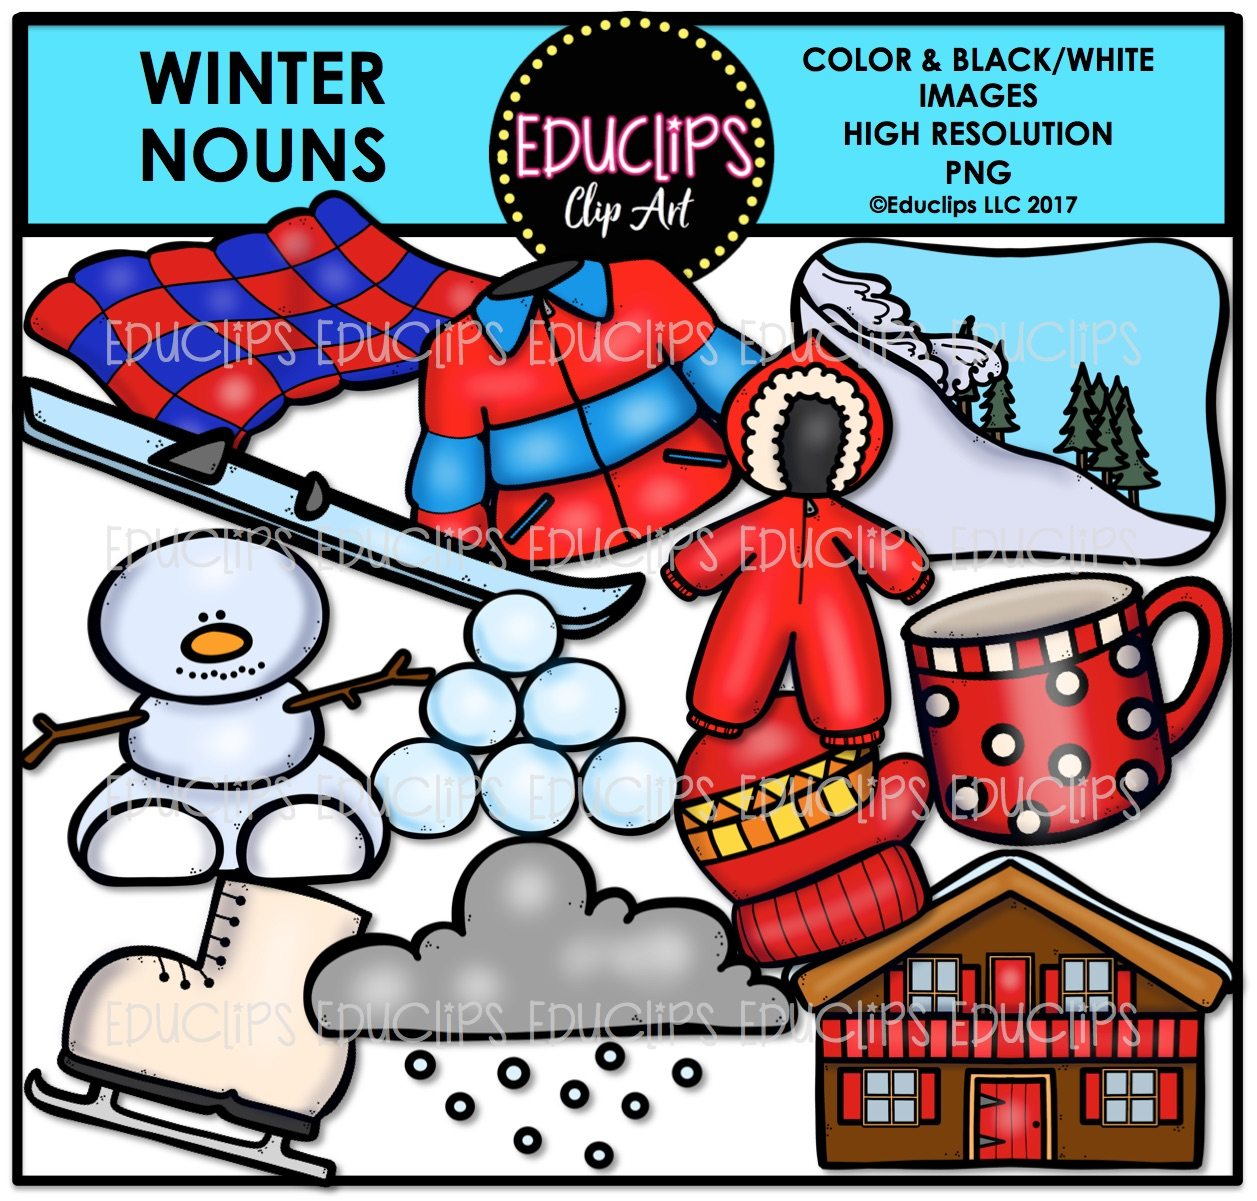 Skiing clipart educlips picture black and white library Winter Nouns Clip Art Bundle (Color and B&W) picture black and white library